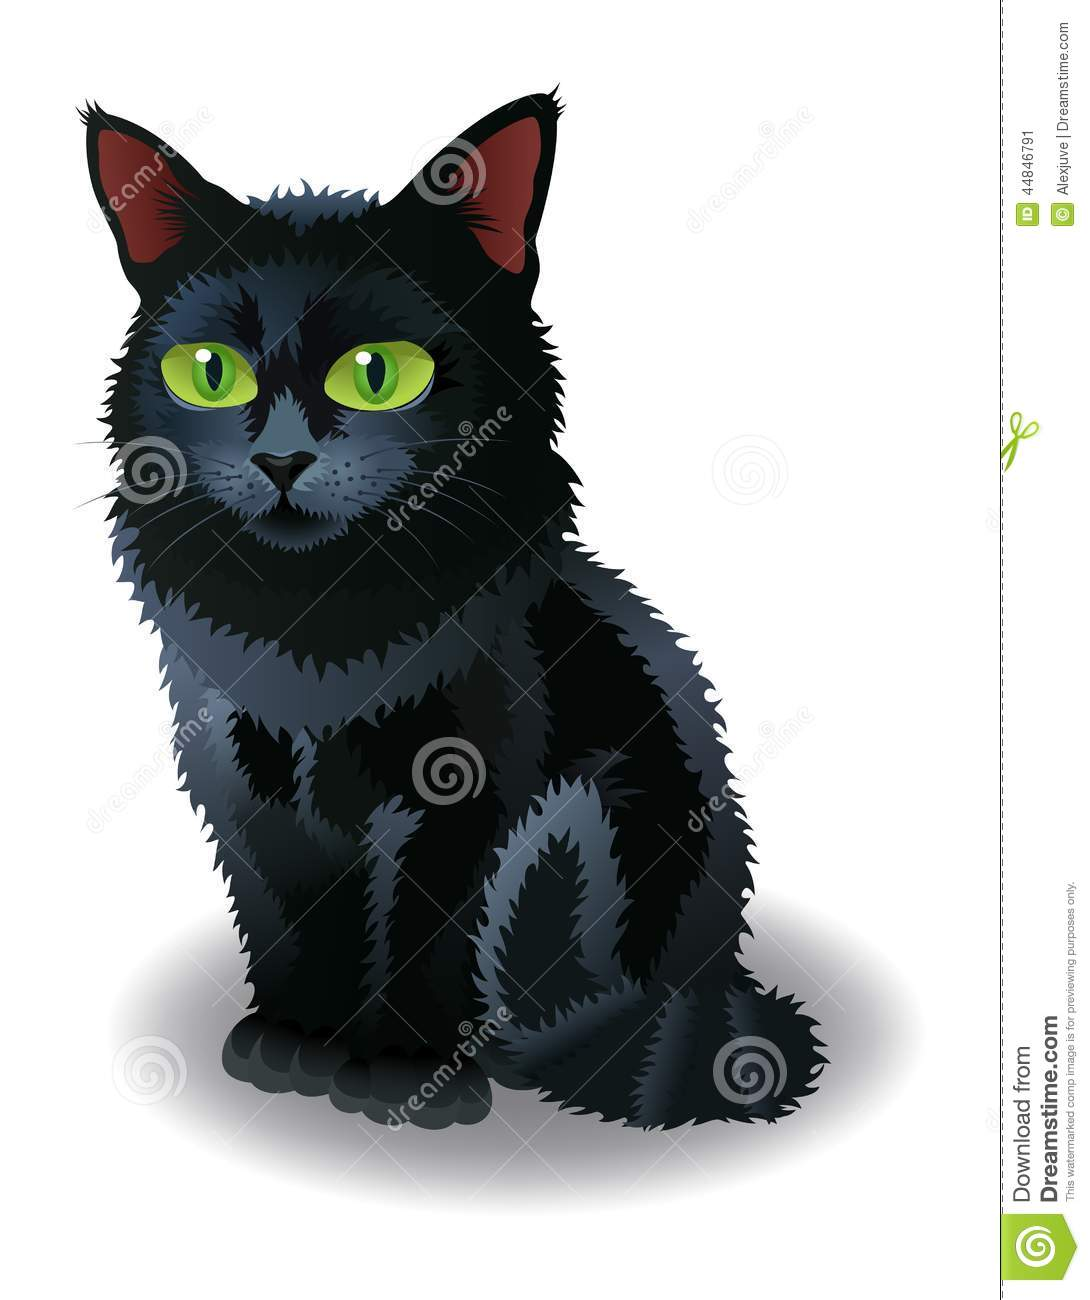 10 Halloween Cat Vector Images